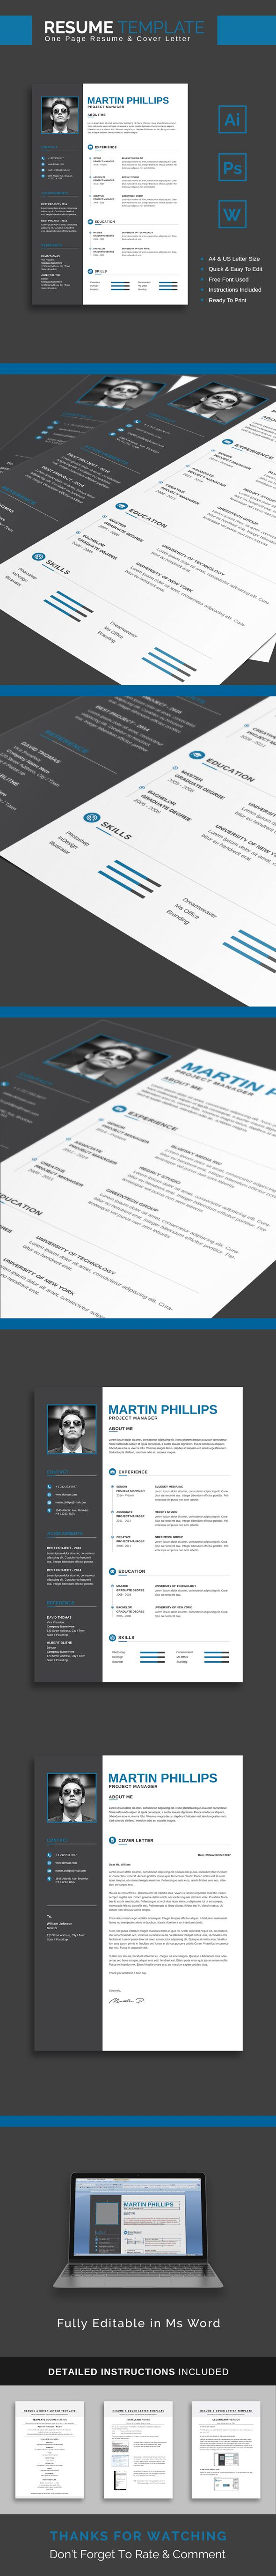 Resume Template Martin The 26 best